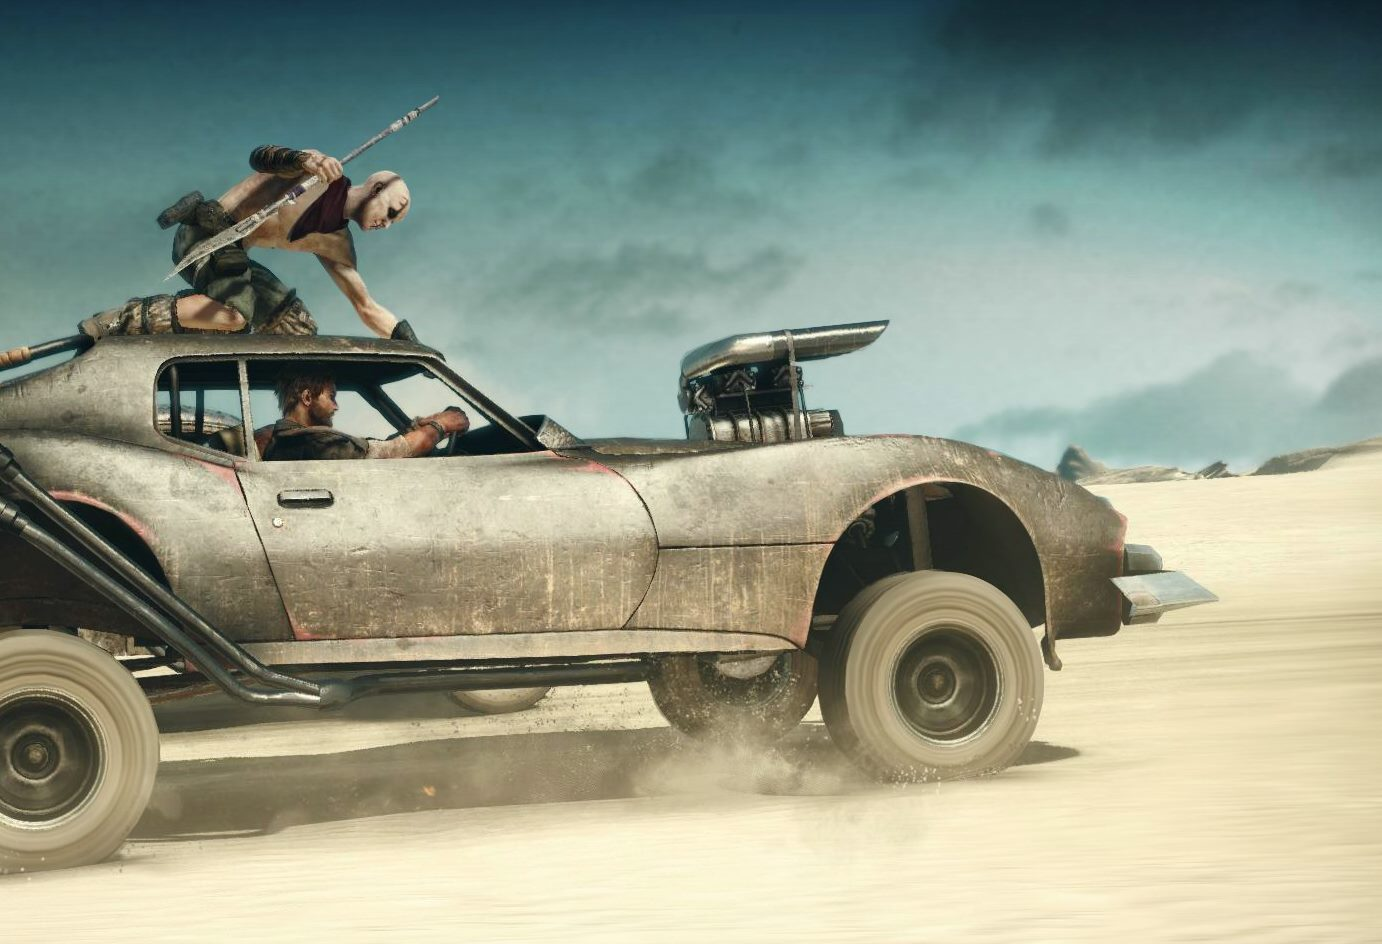 mad max helicopter pilot with Mad Max Release Date Pc Ps4 Xbox One on Fiche likewise World Cup 2014 American S b 5479819 additionally Mad Max Release Date Pc Ps4 Xbox One in addition S 1025258 in addition 202519 06 Fg2 09 Fg2 Front End Conversion Habby Red Pearl.